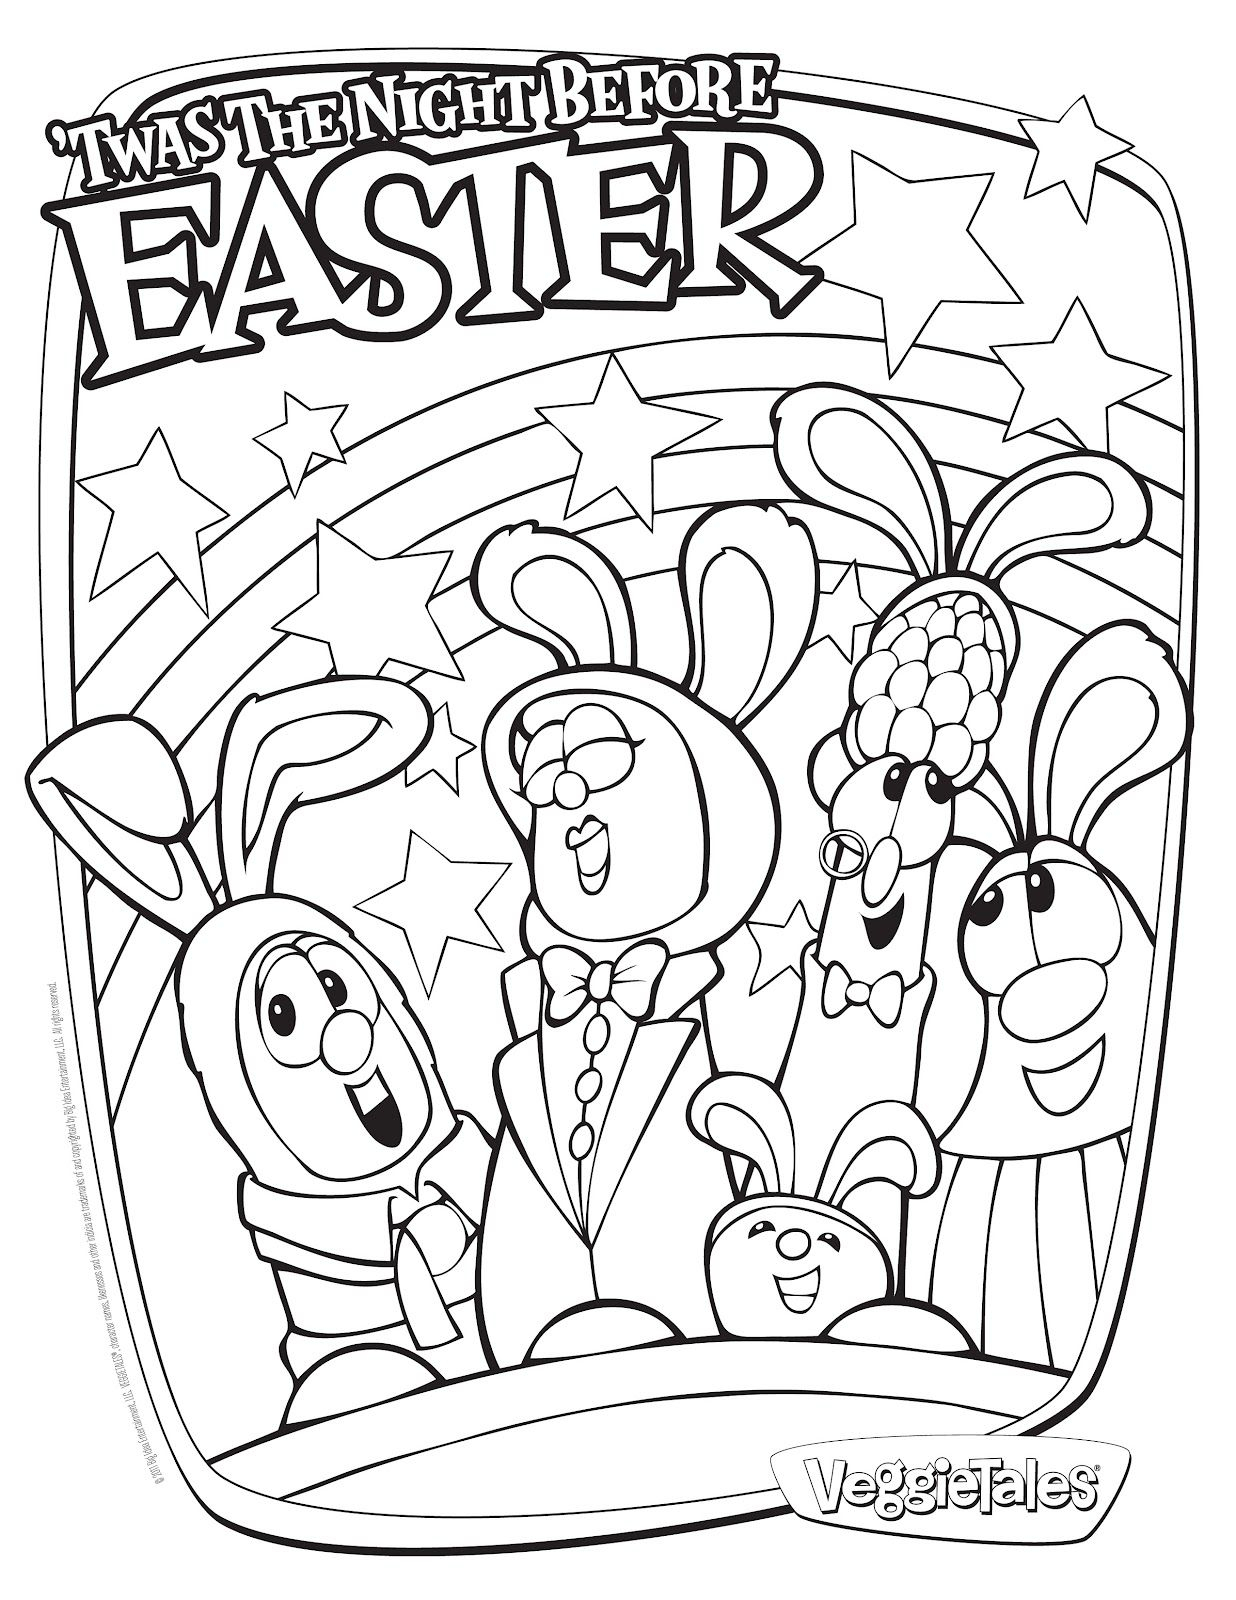 easter coloring pages that you can print Download-Pin by sbs on Religious Easter Coloring Pages Pinterest 16-n